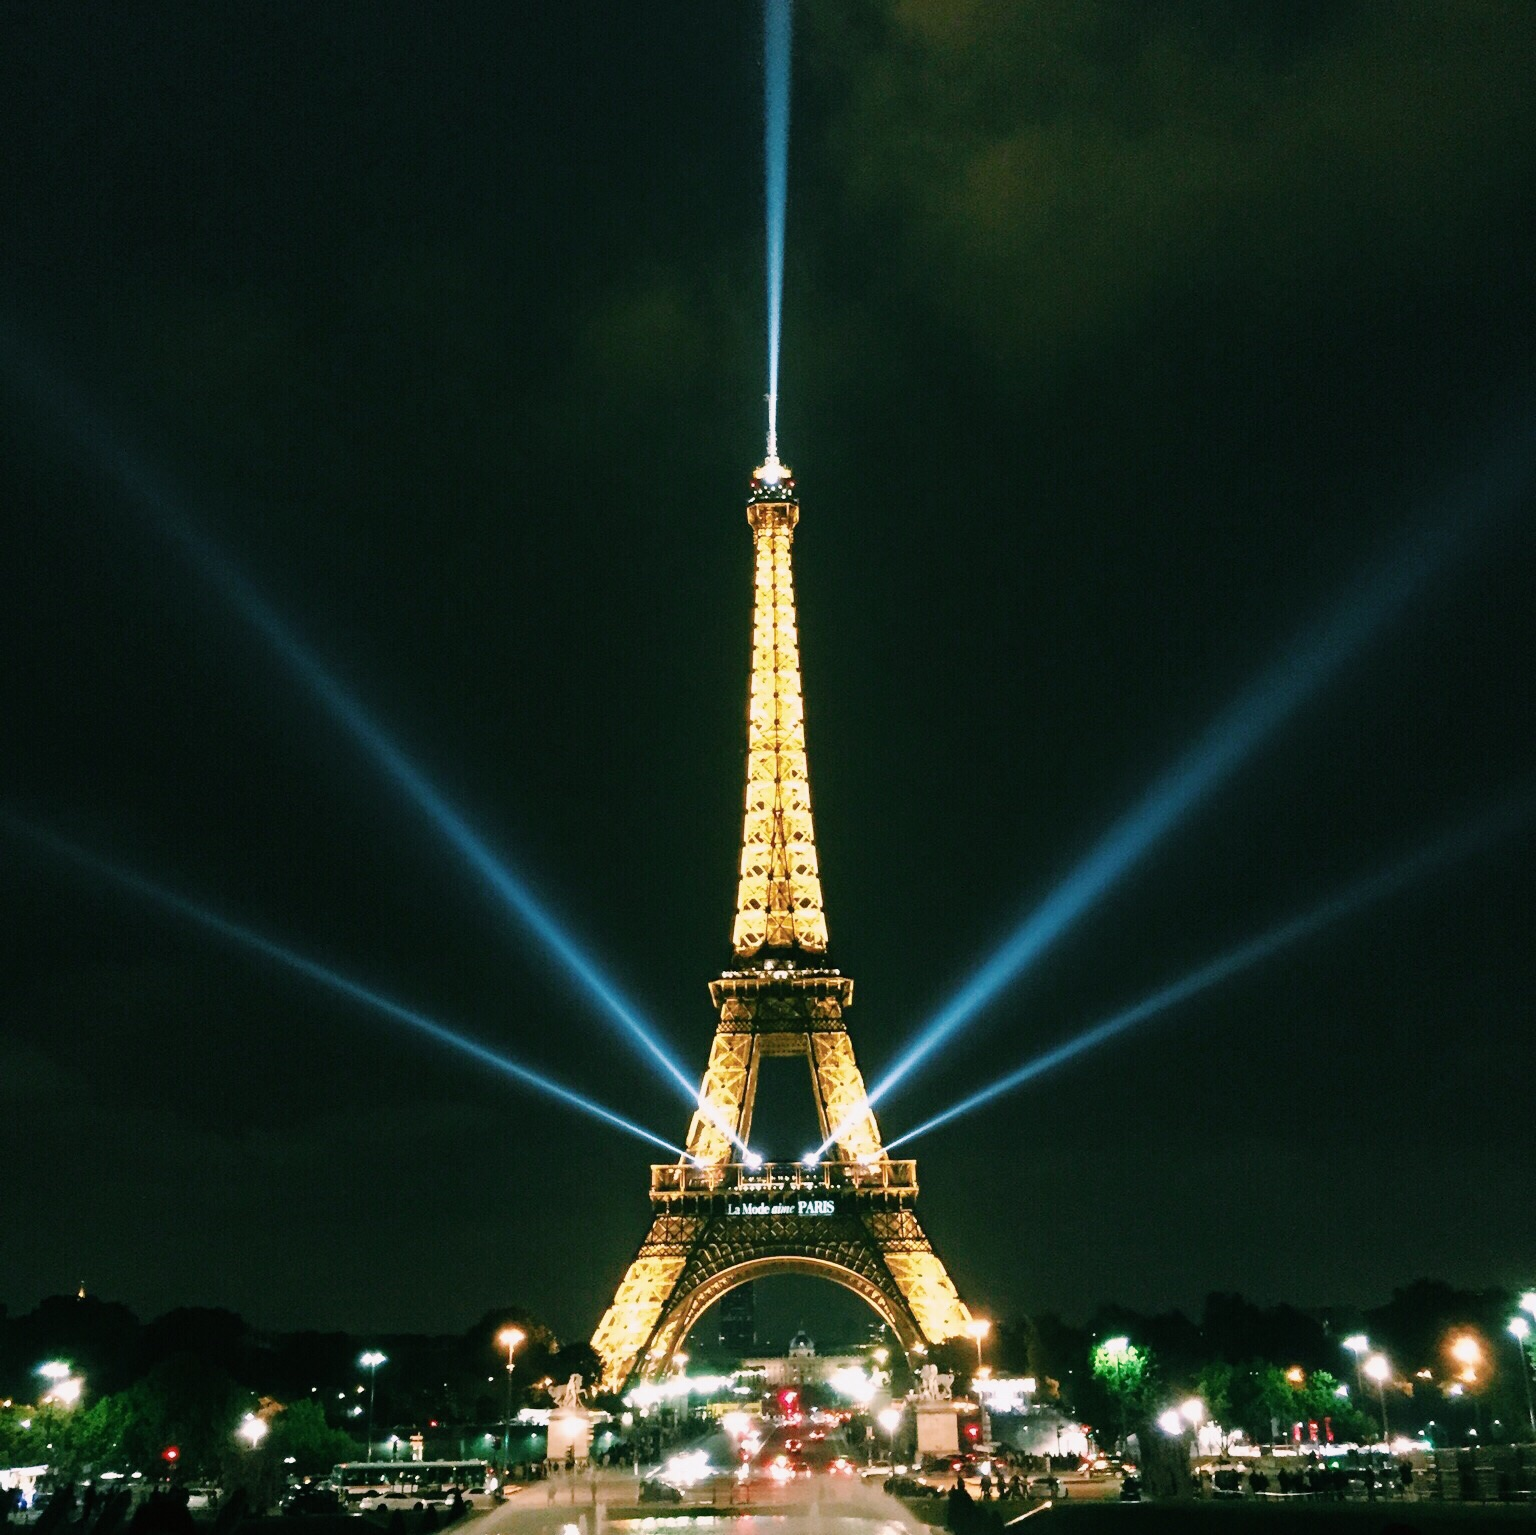 The Eiffel Tower looking absolutely stunning at night.